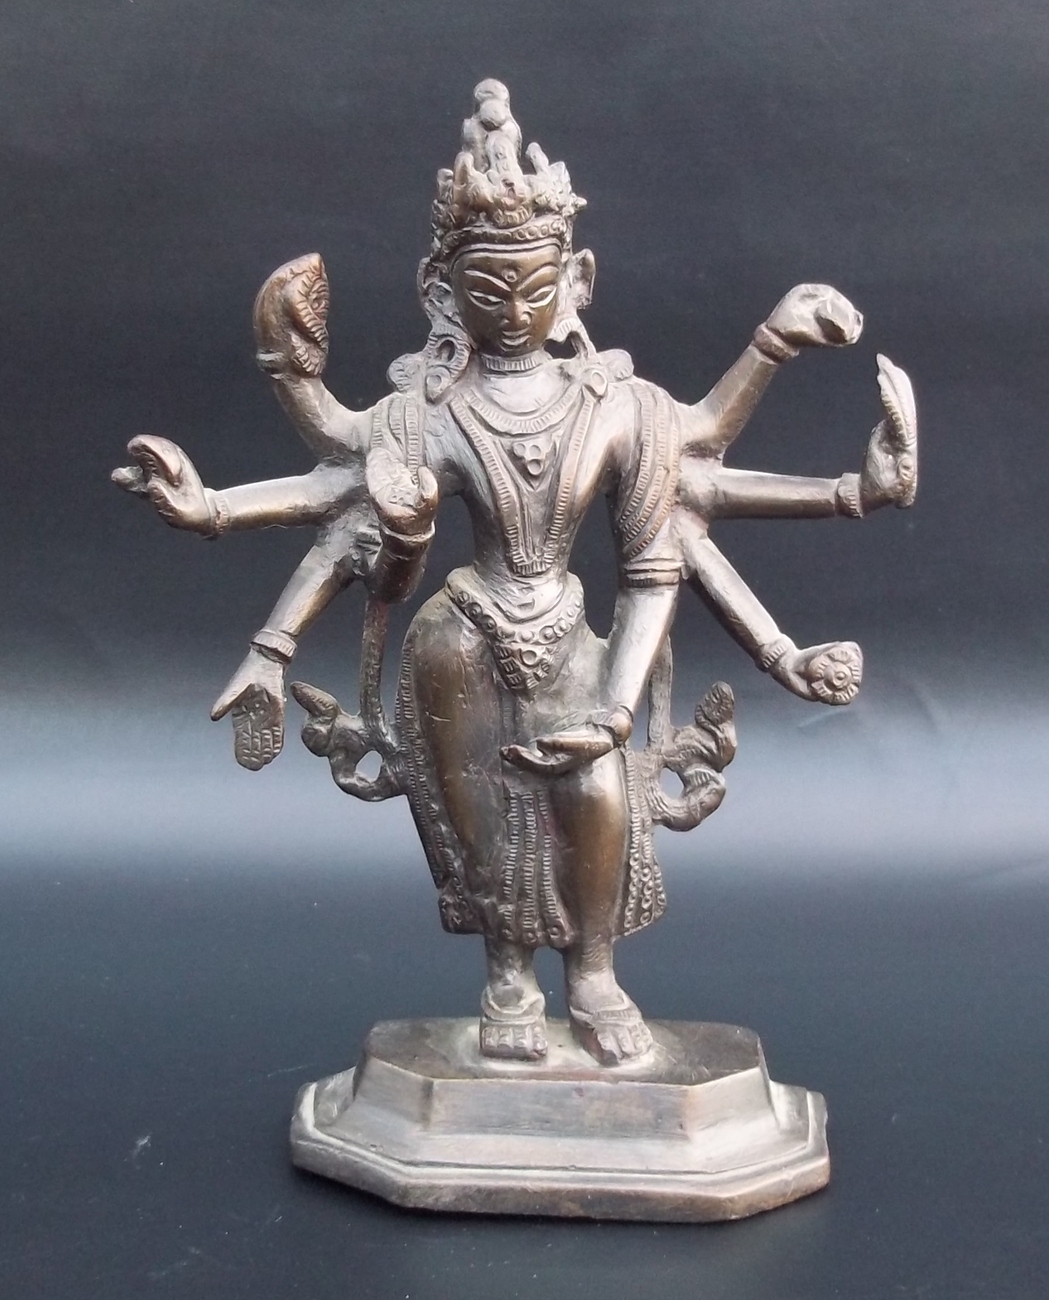 Vintage India Brass Hindu Lord Shiva Statue  Purchased In India 1960